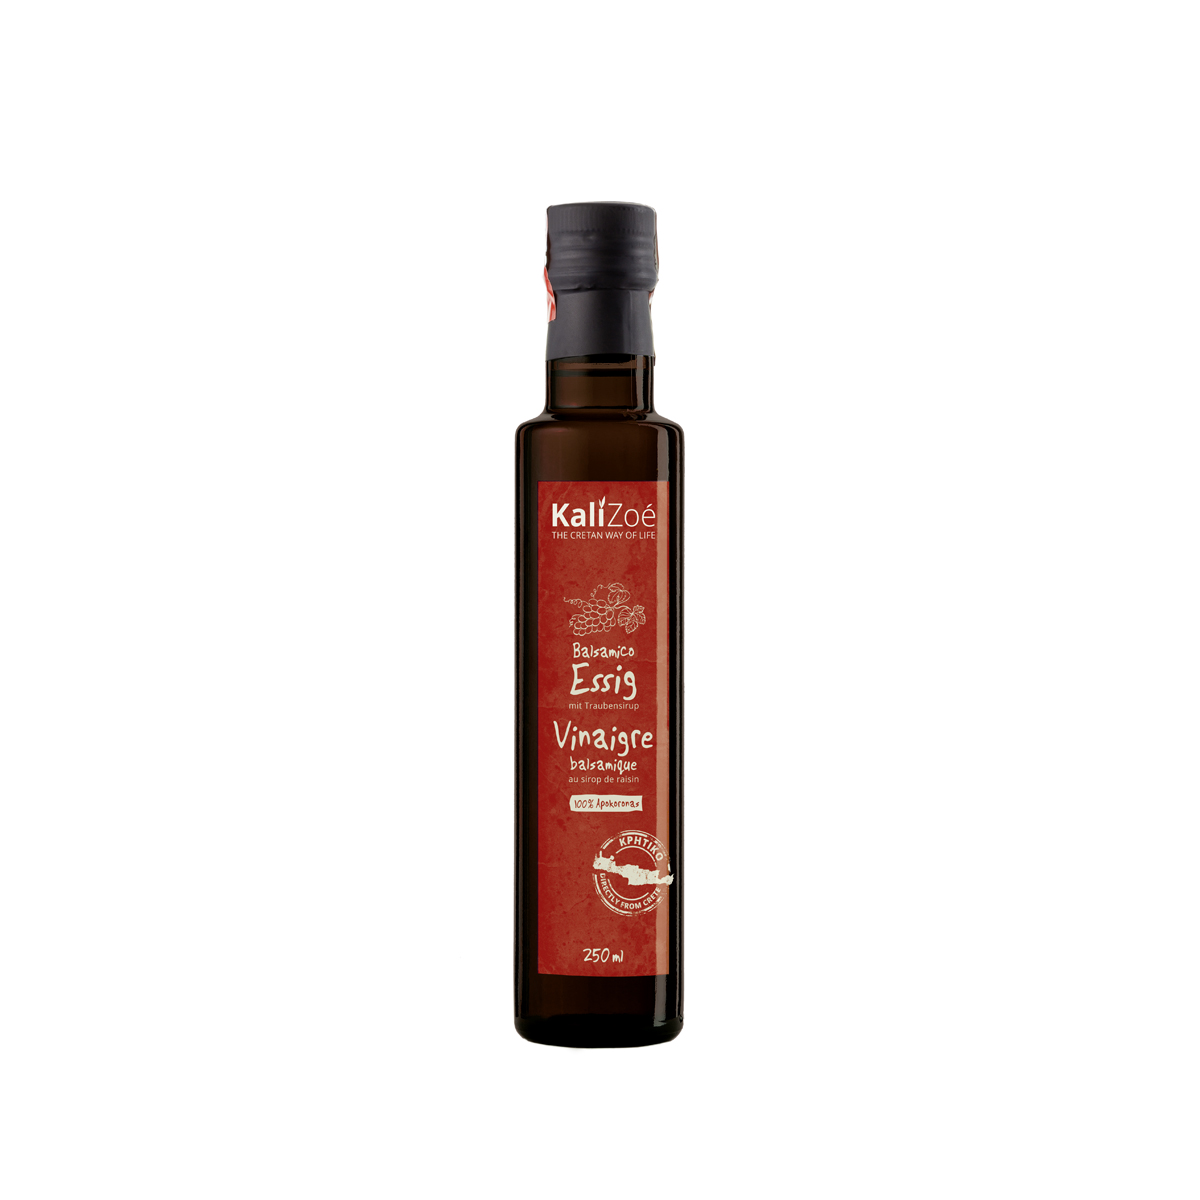 Balsamic vinegar with grape syrup – 250ml